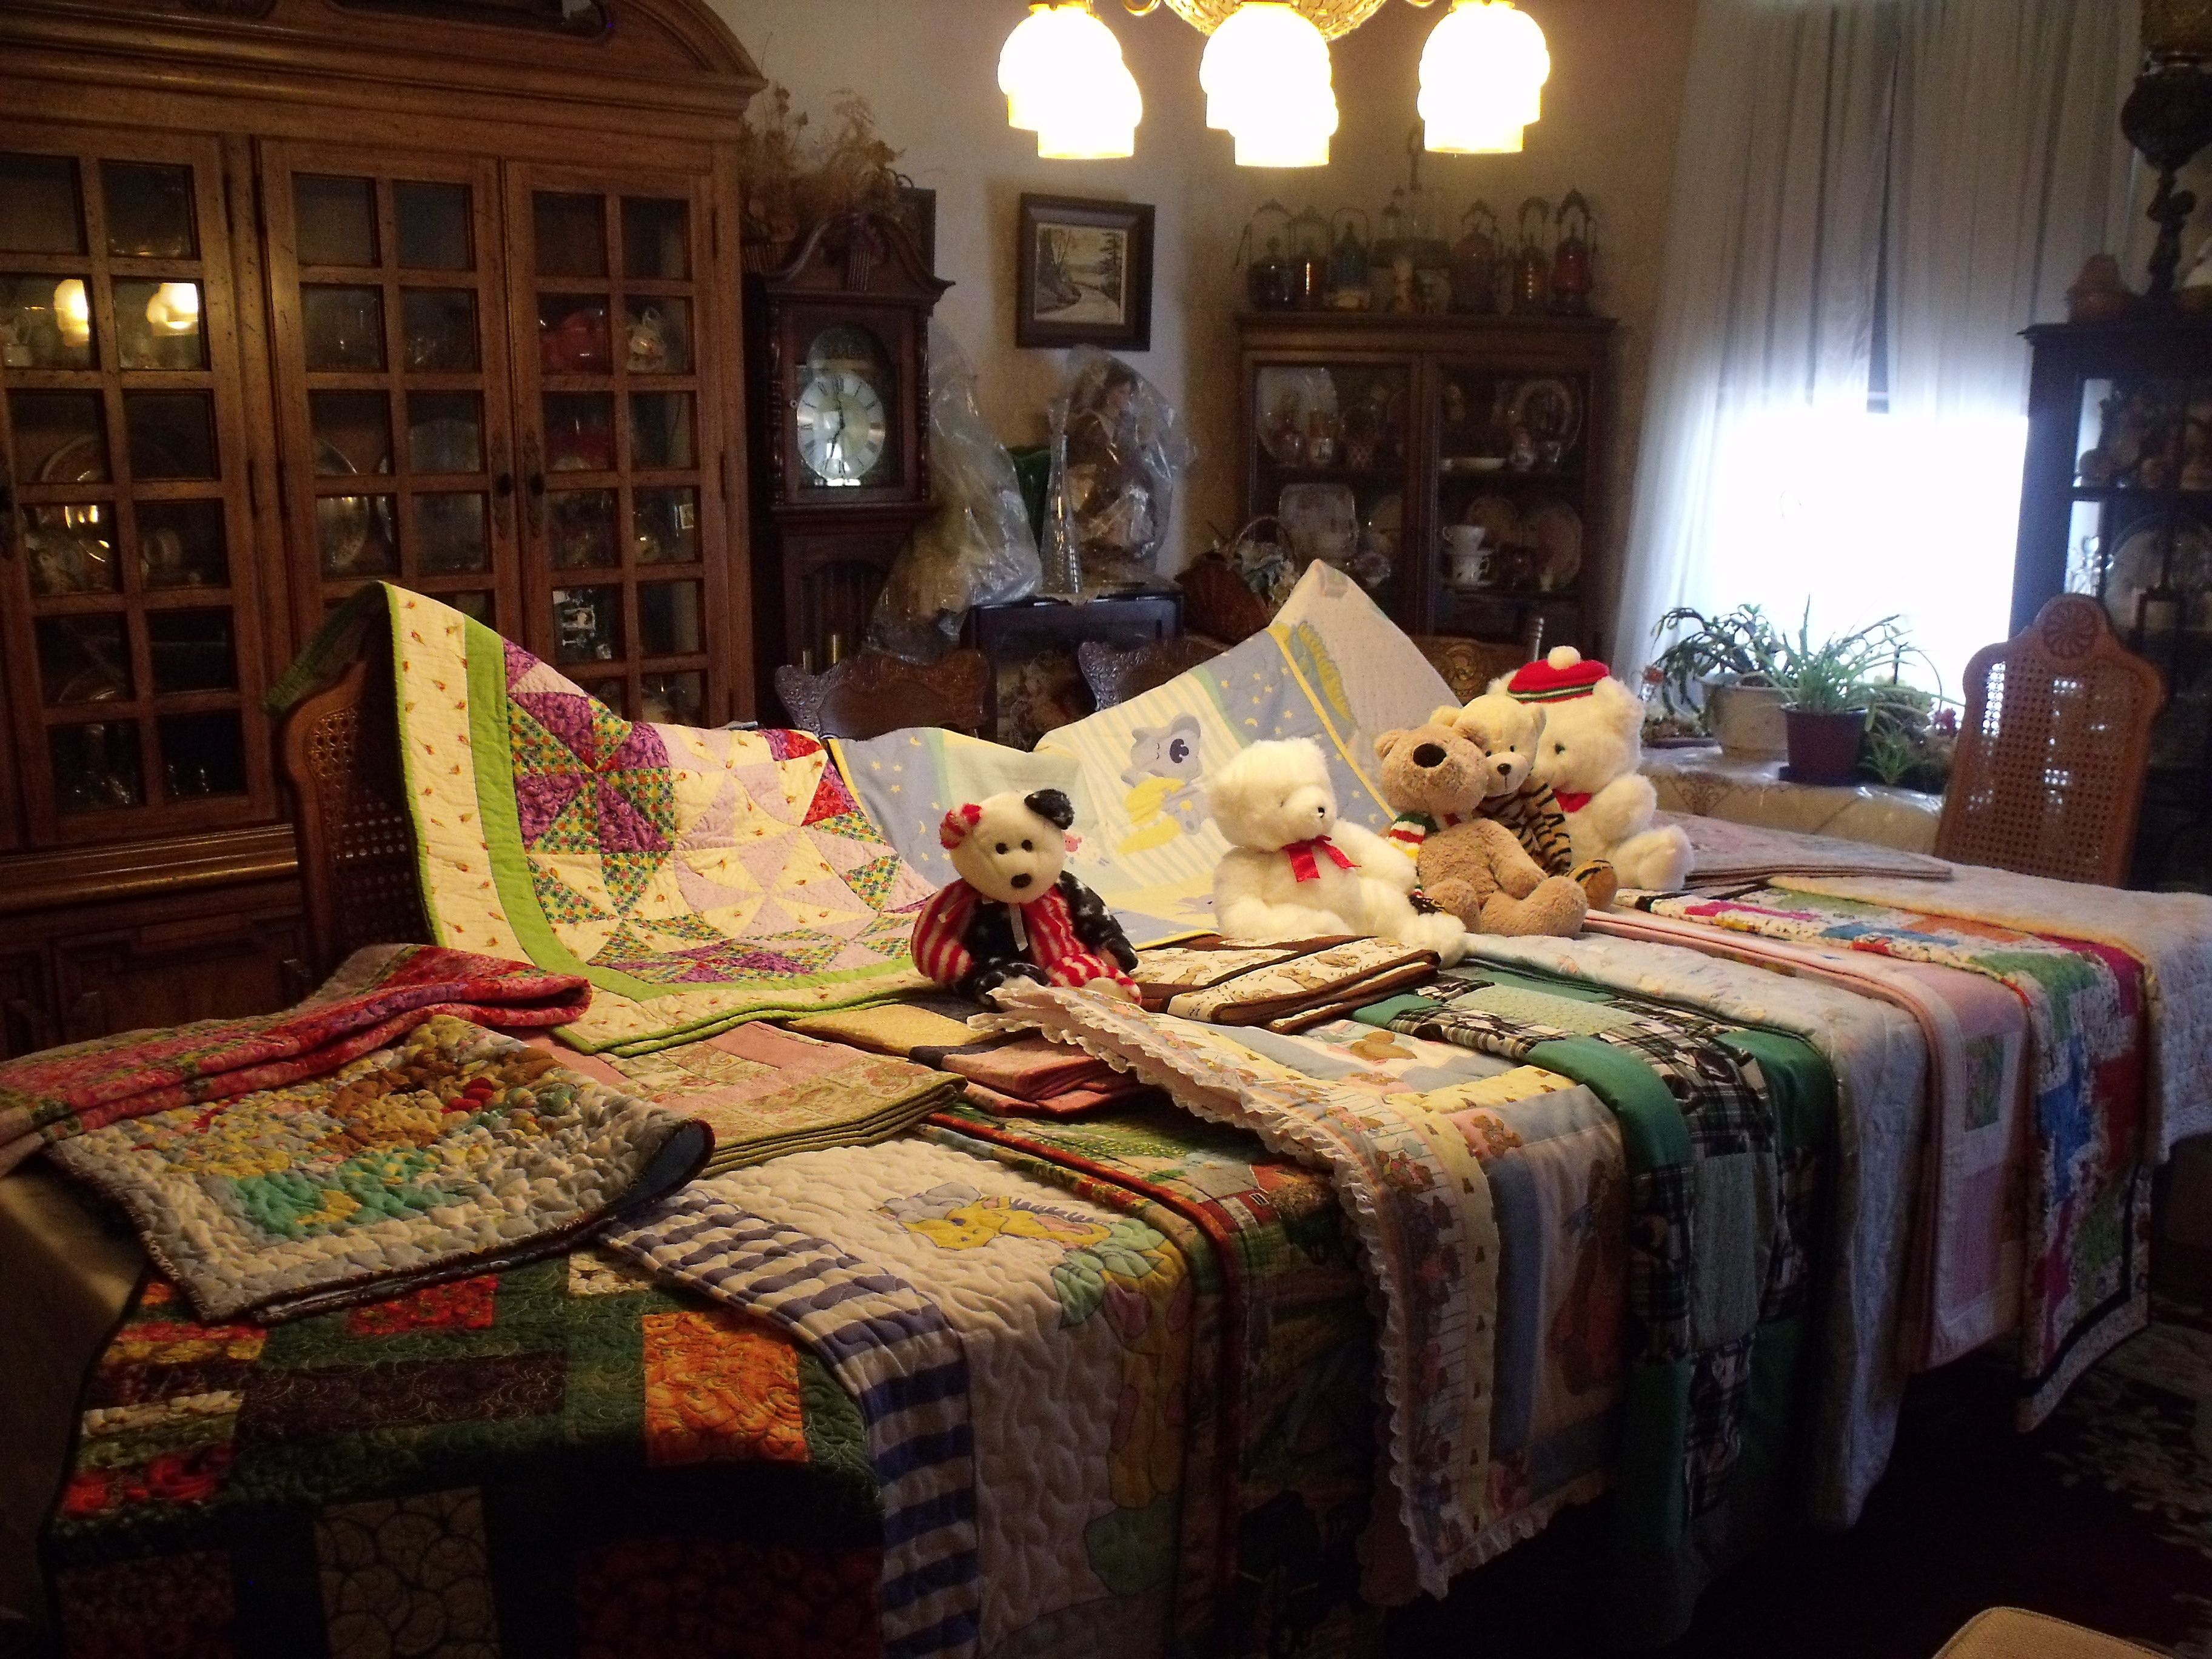 Donated-quilts-from-Grand-Quilting-Guild-Fergus.jpg